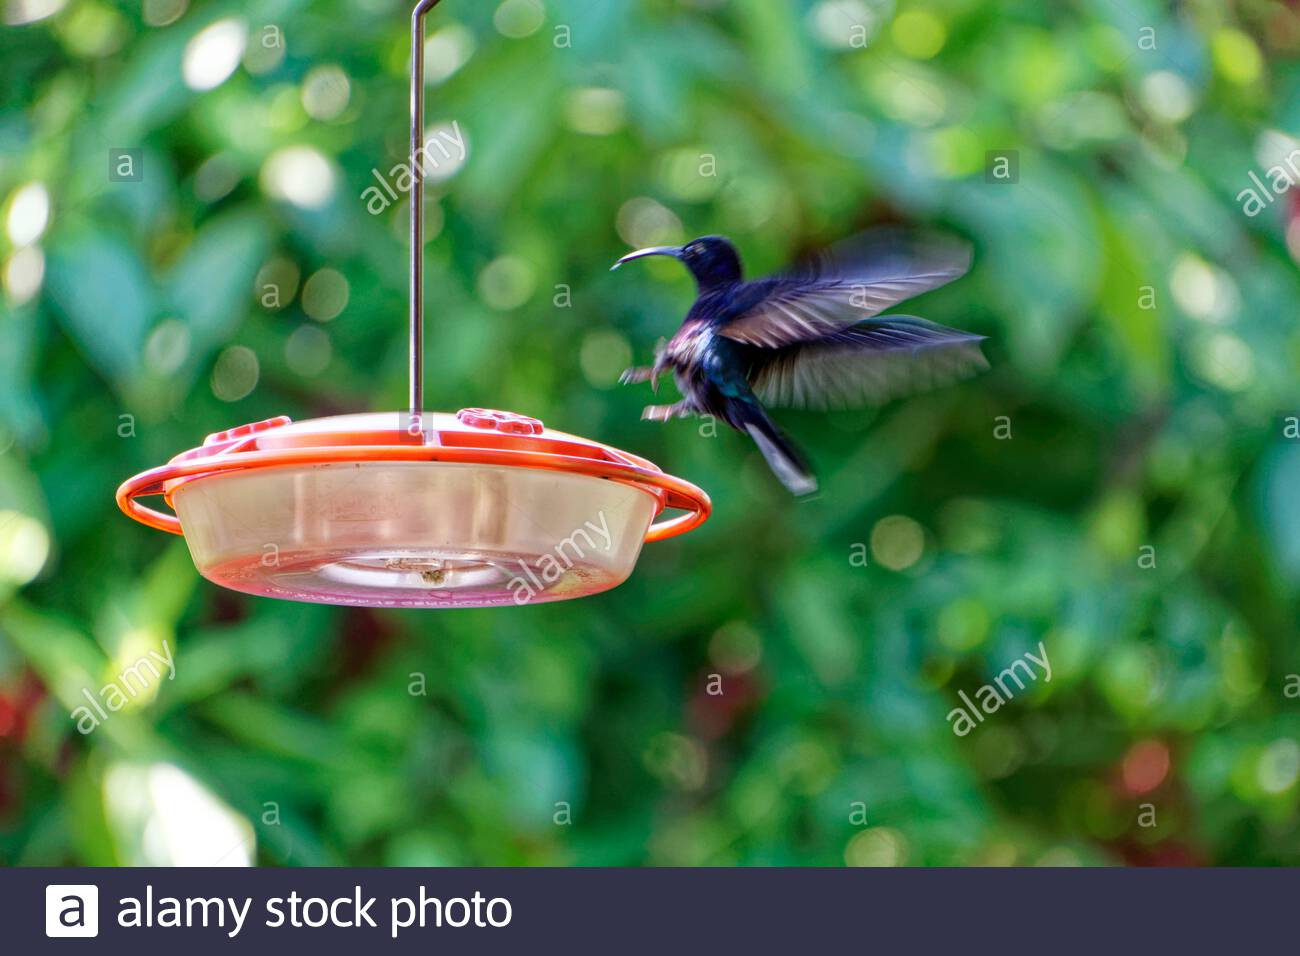 violet-sabrewing-hummingbird-blurred-fli